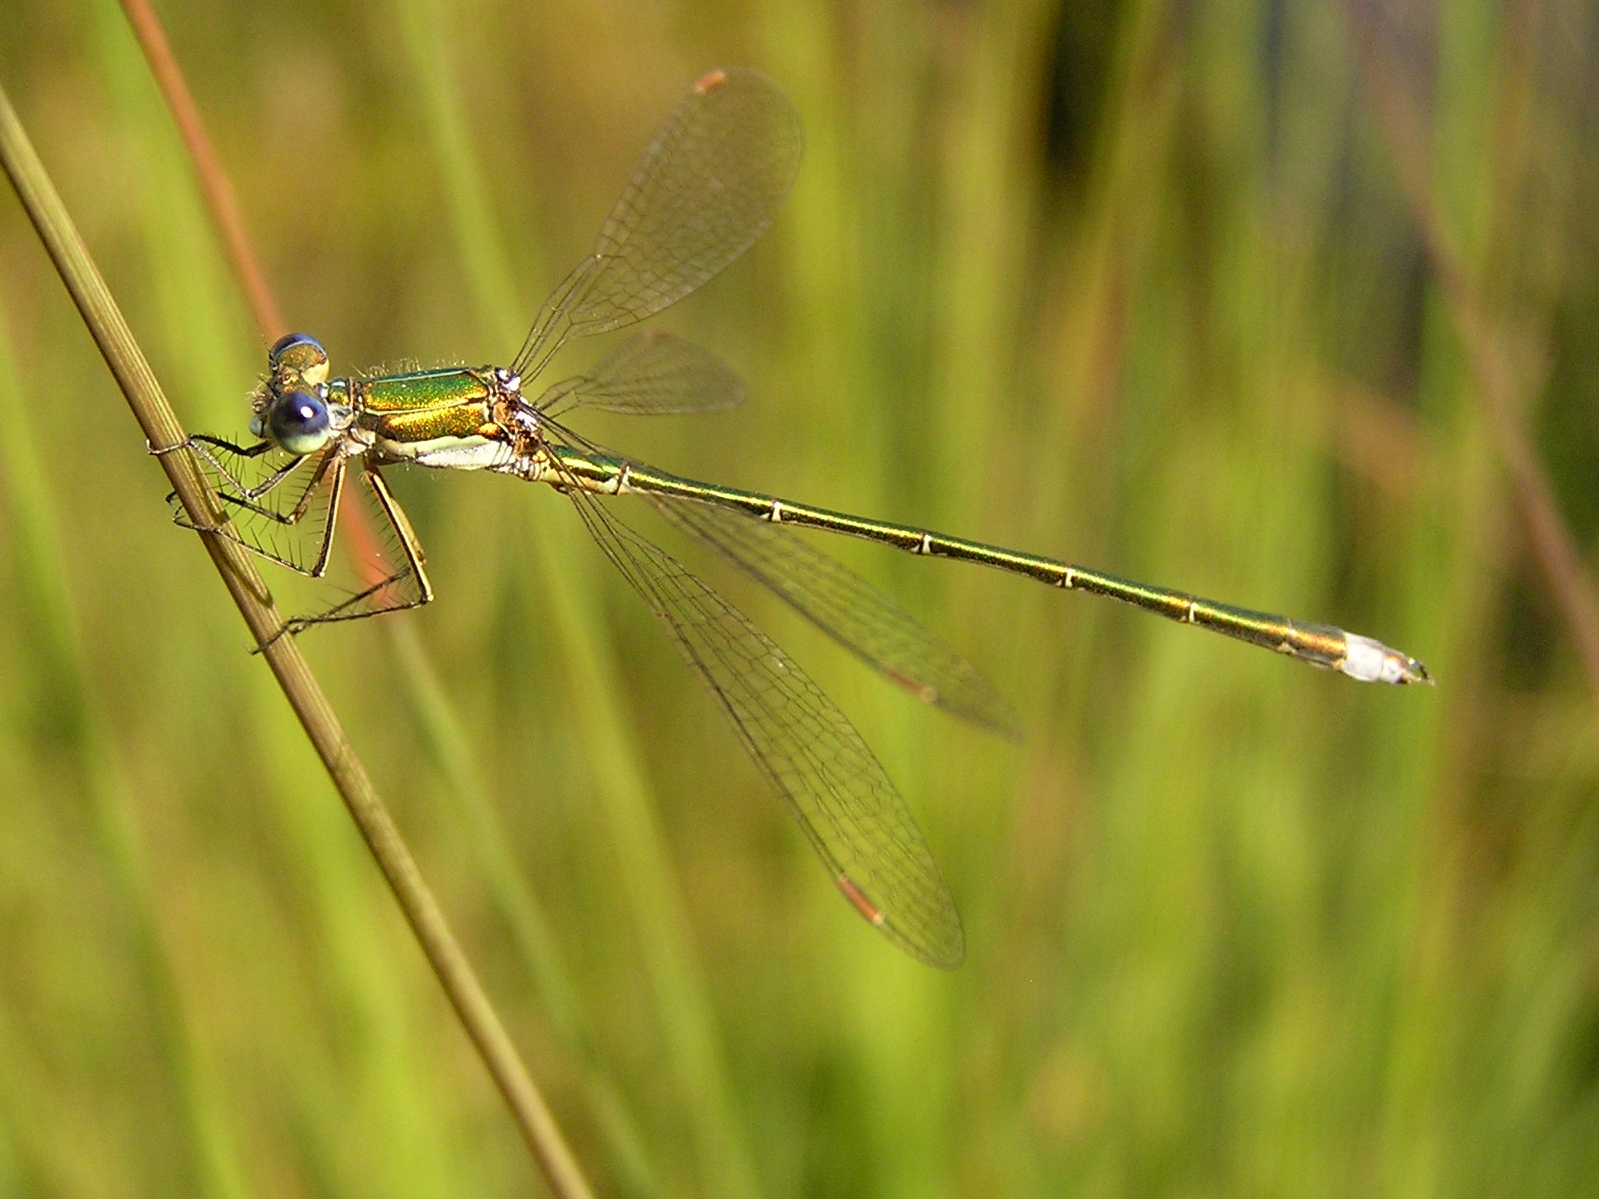 https://i0.wp.com/upload.wikimedia.org/wikipedia/commons/a/a3/Lestes_virens02.jpg